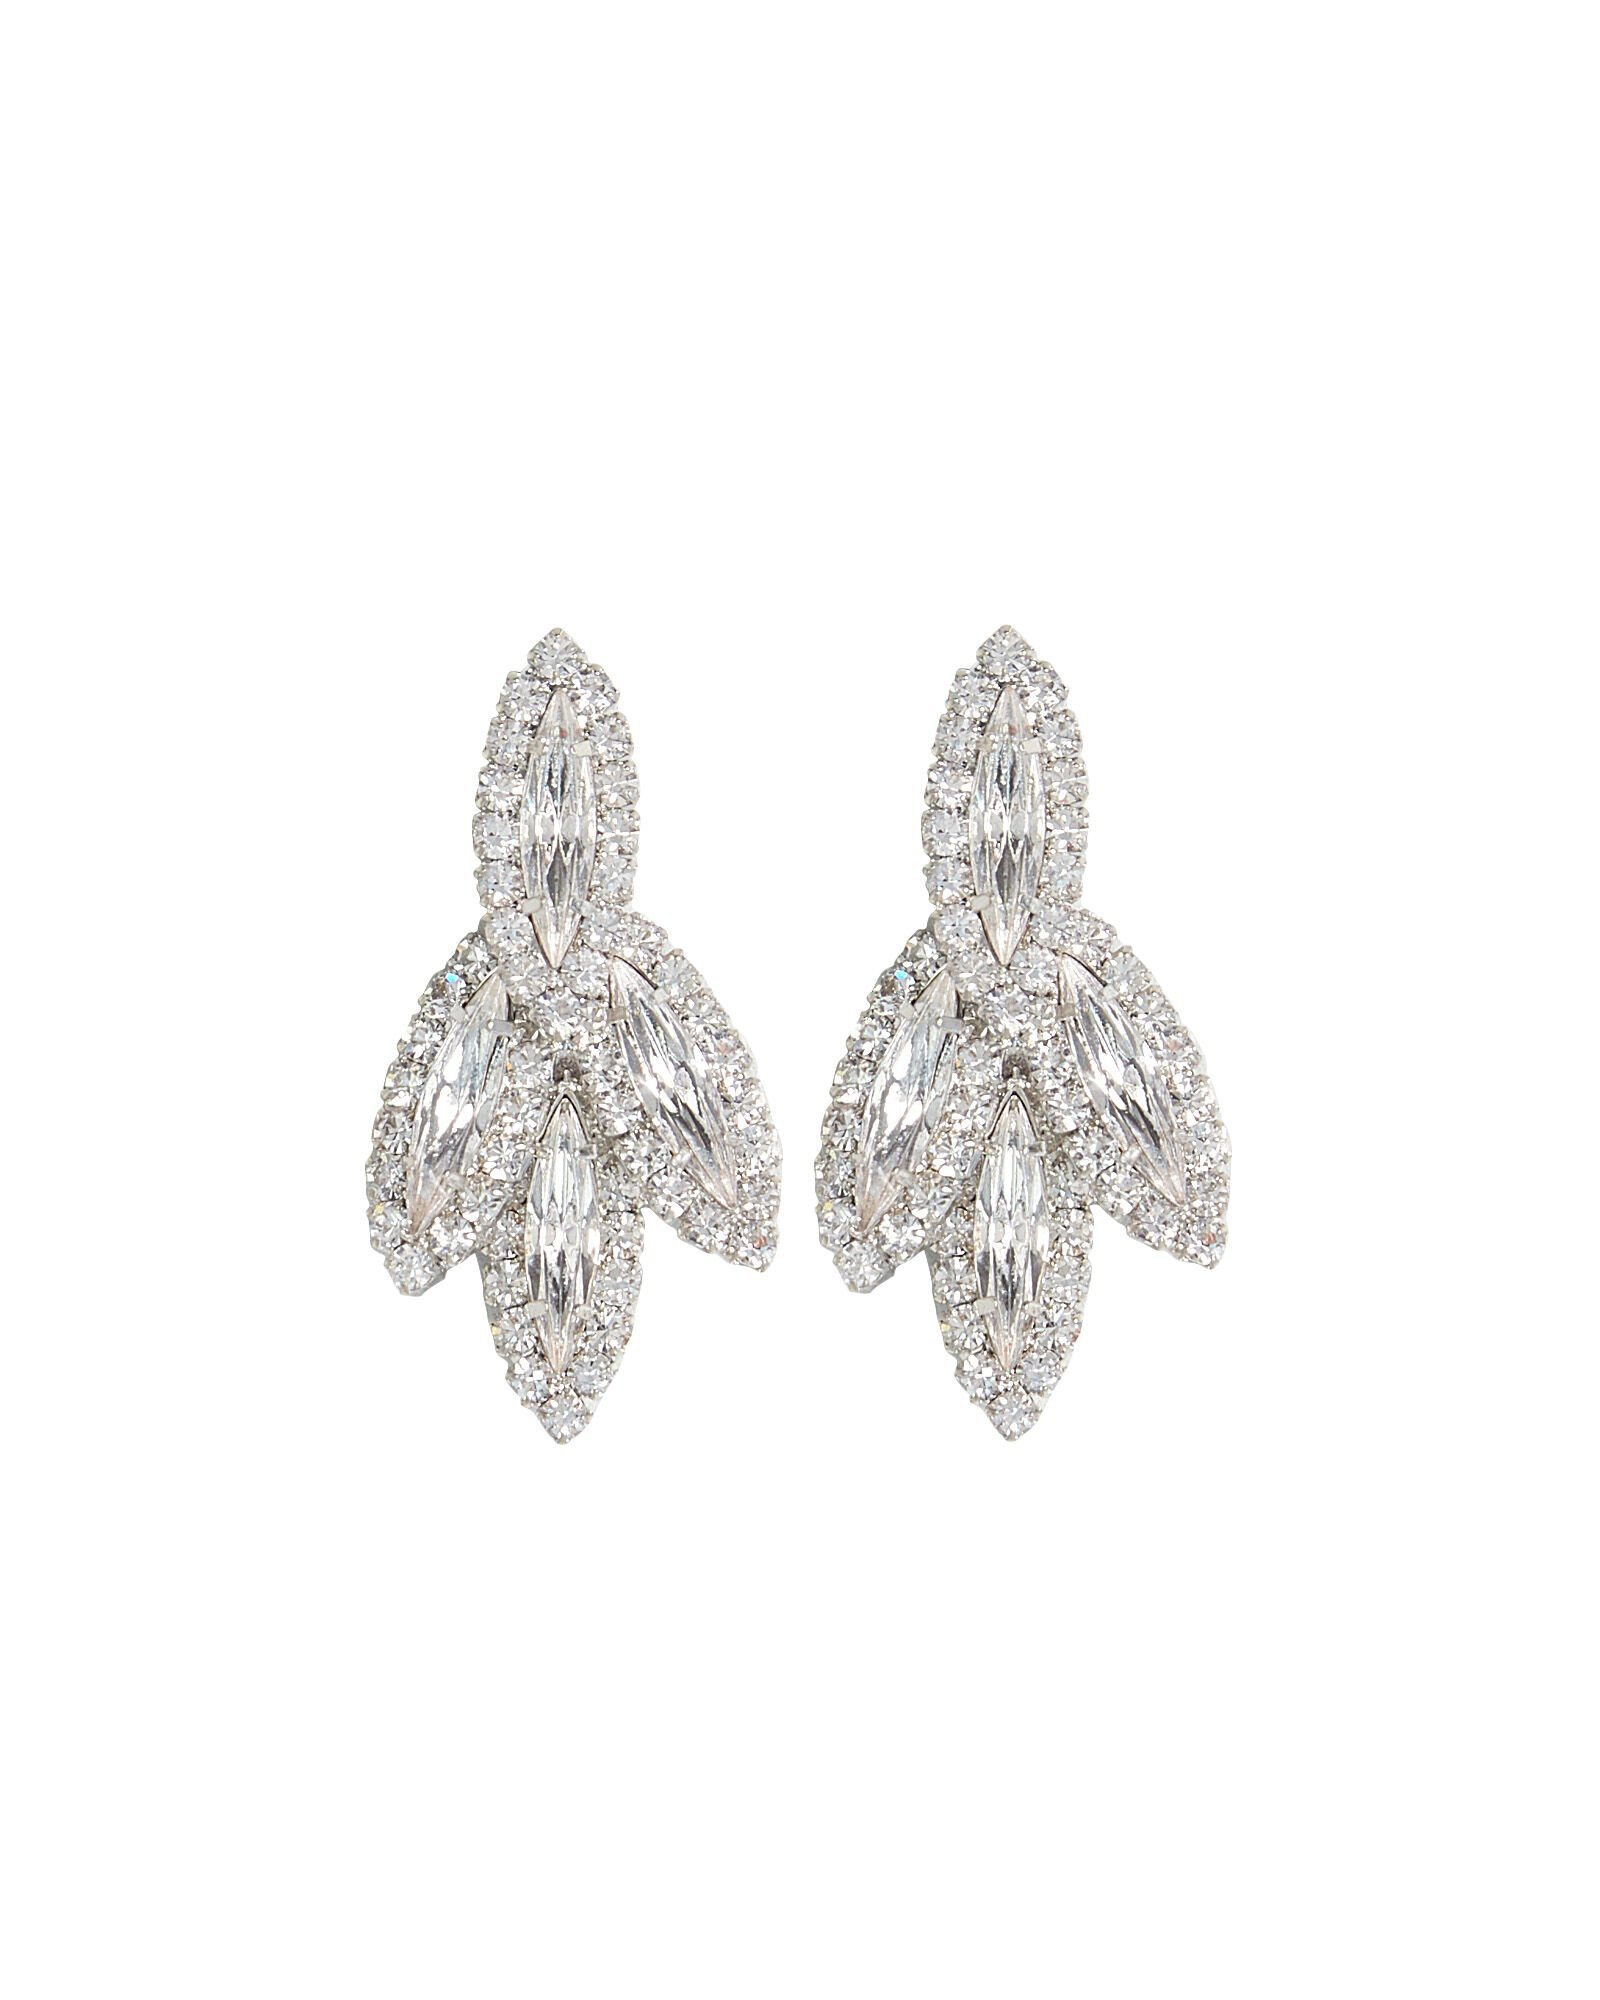 Elizabeth Cole | Petite Bacall Crystal Earrings | INTERMIX®